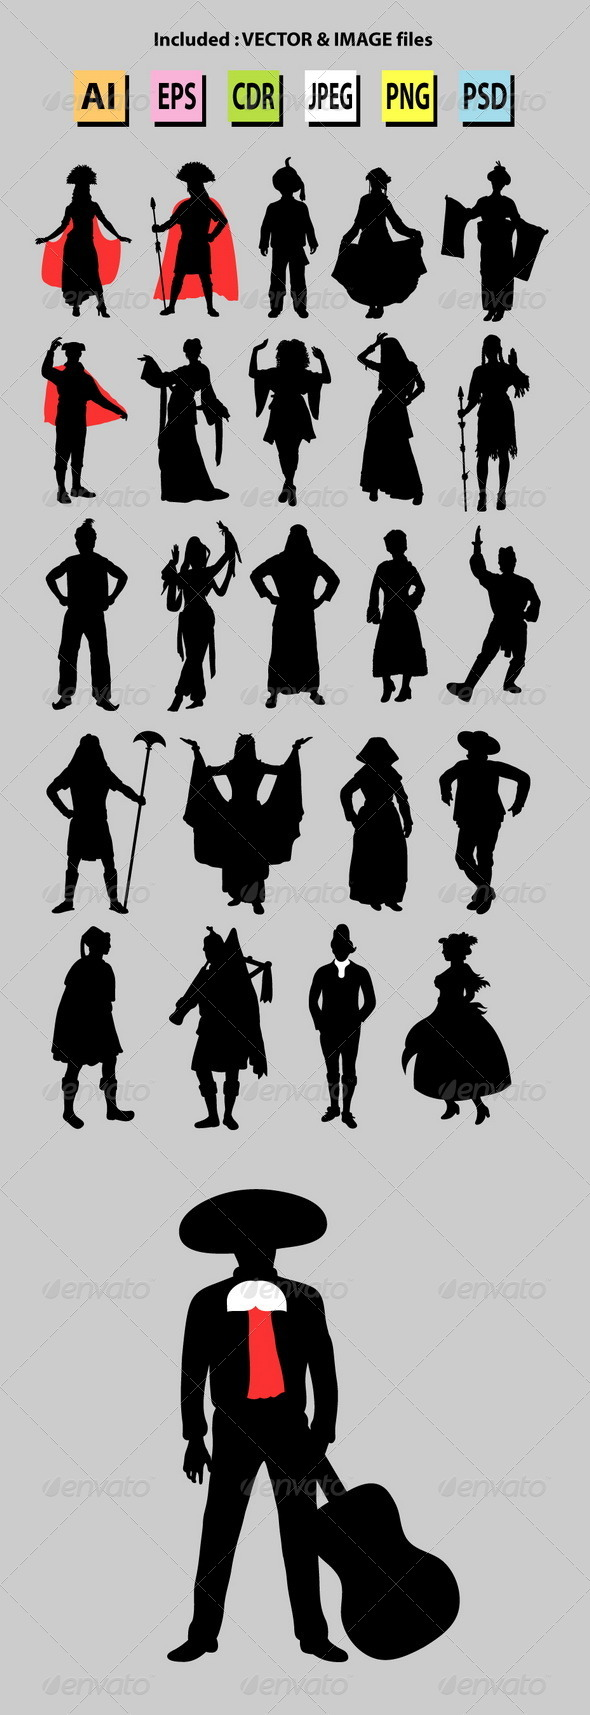 Nationalities Silhouette - People Characters